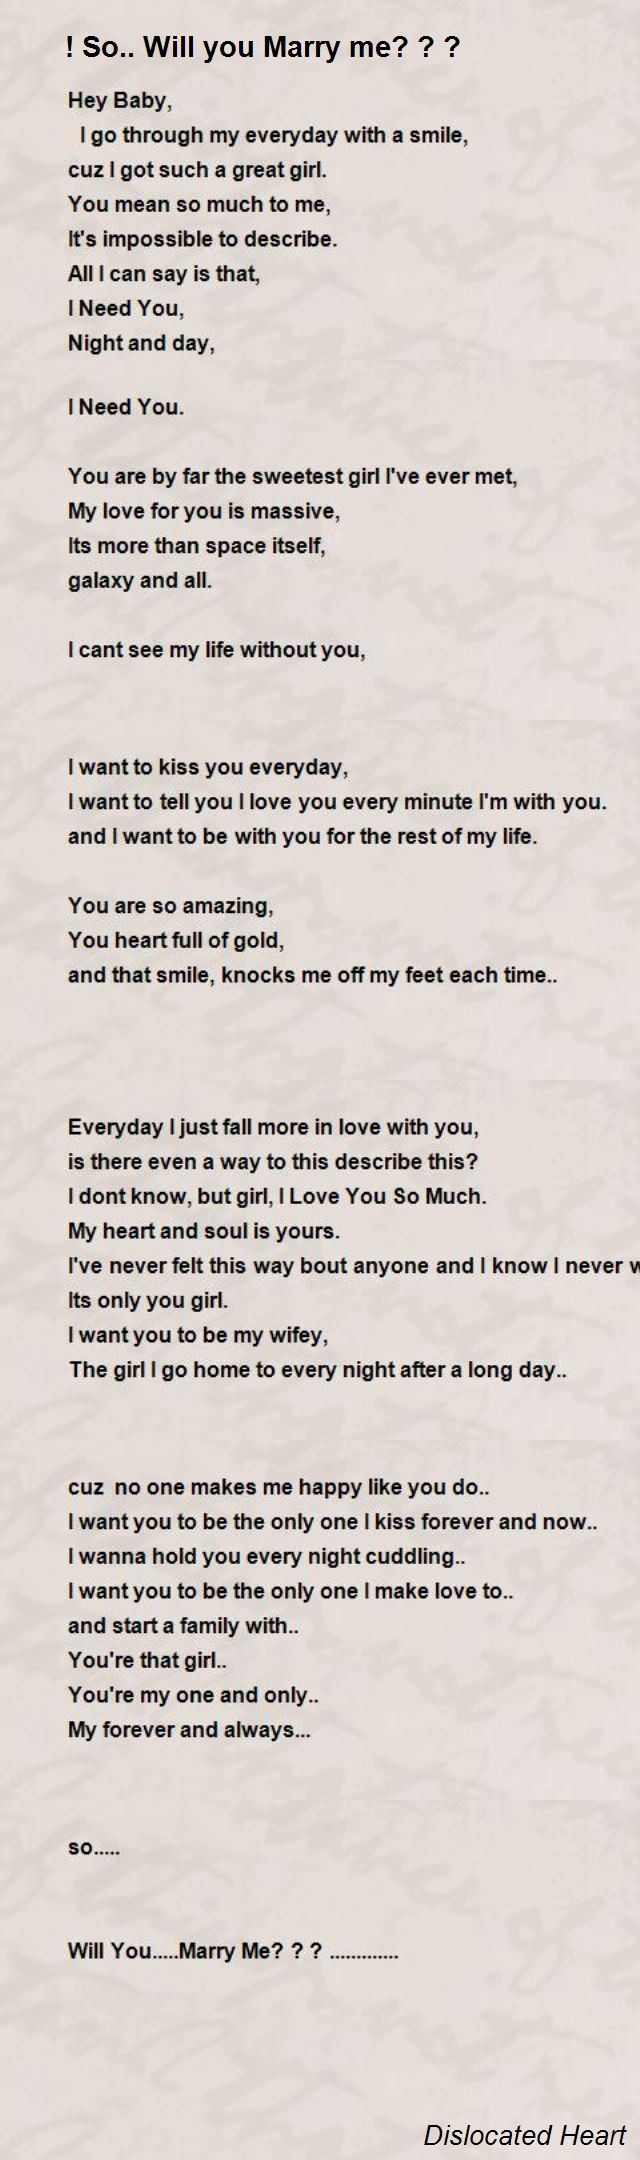 You me for him will poems marry Marriage Proposal